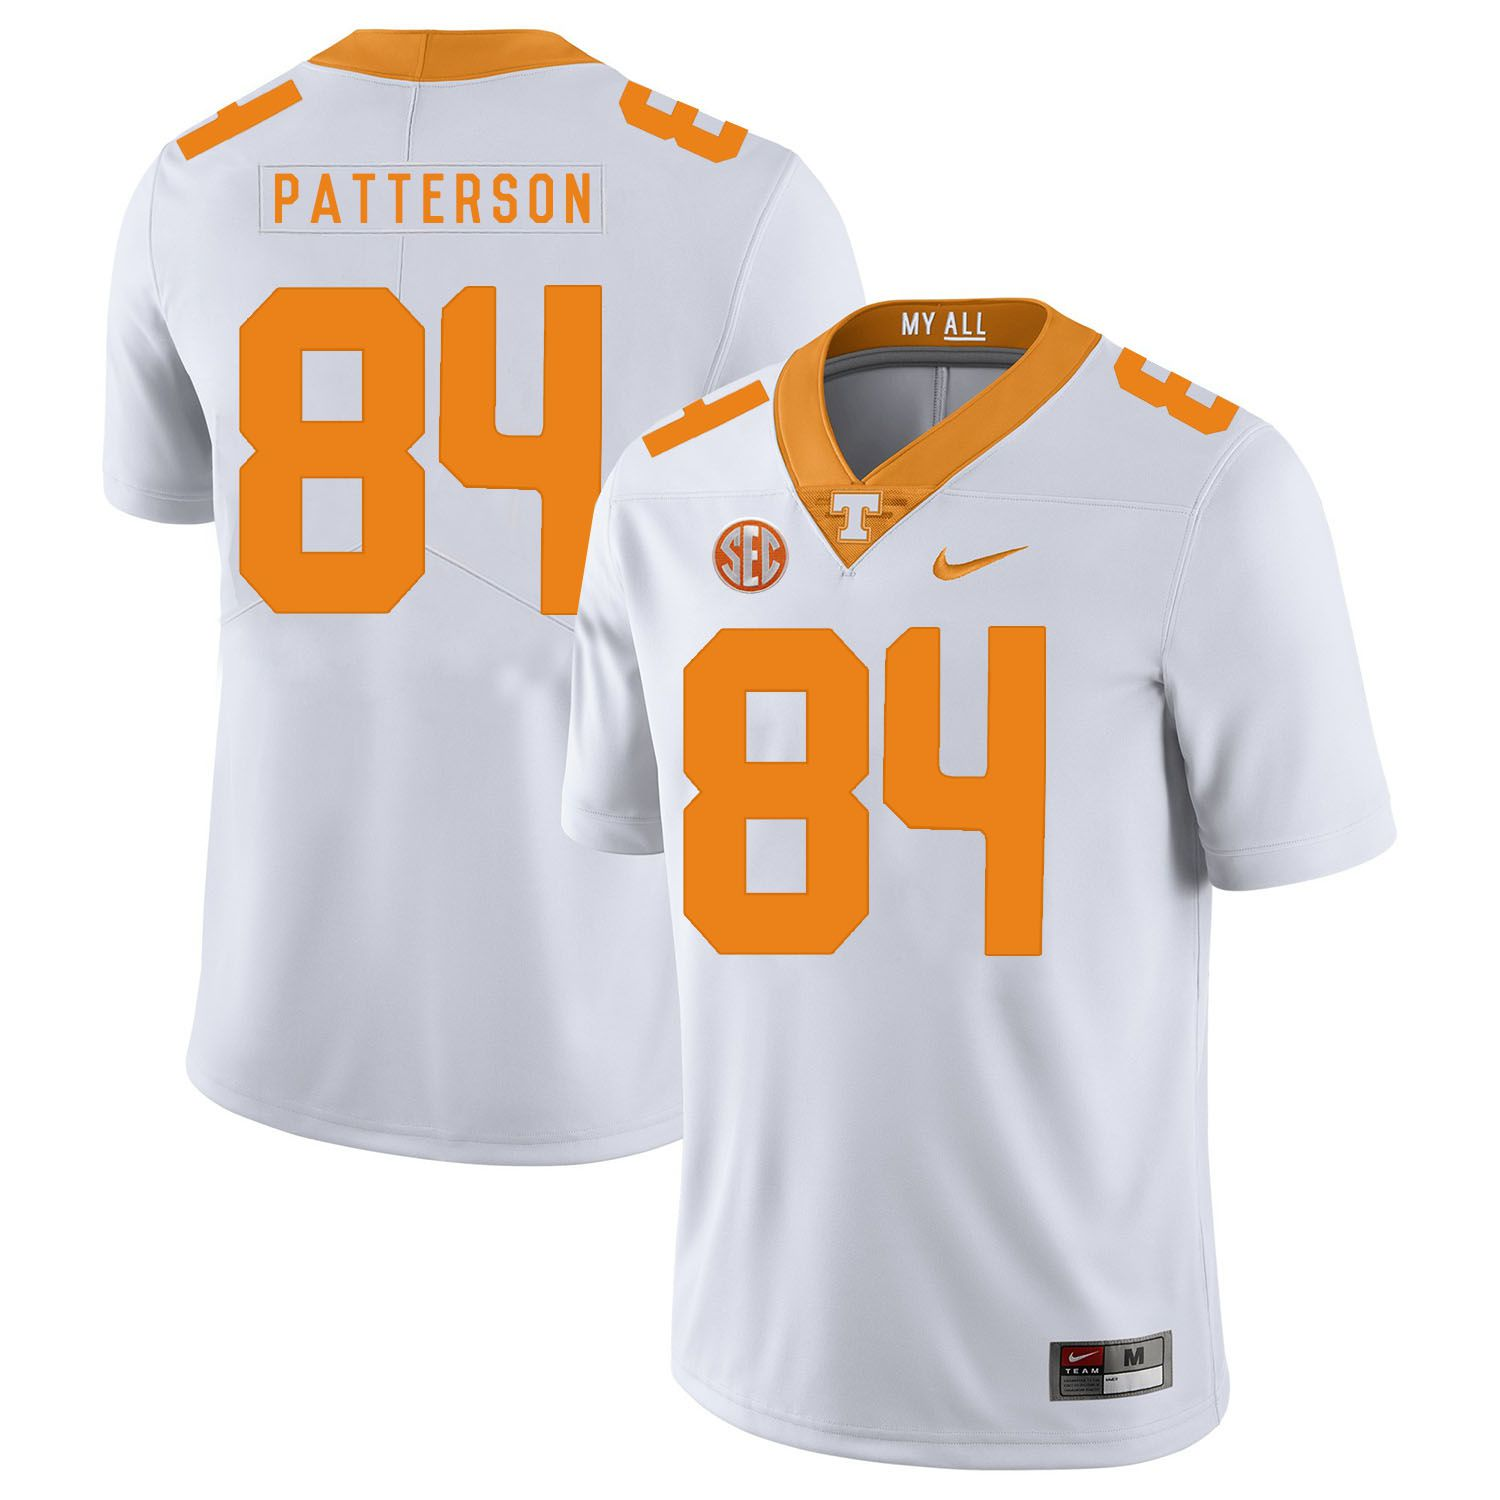 Men Tennessee Volunteers 84 Patterson White Customized NCAA Jerseys